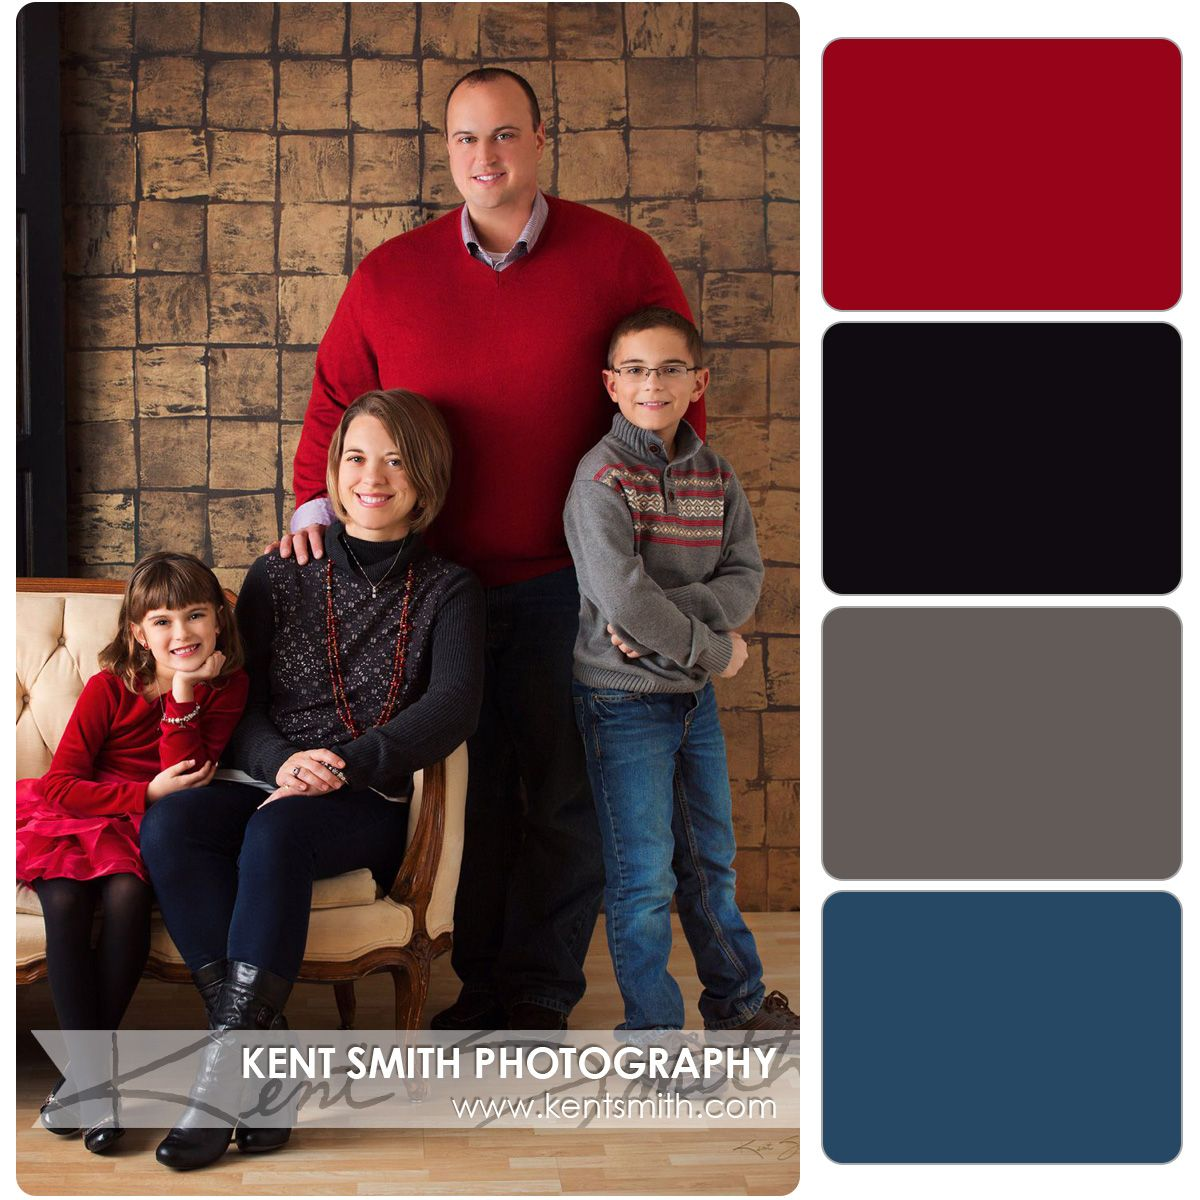 Pin by Kent Smith Photography on Portrait Palettes | Pinterest ...